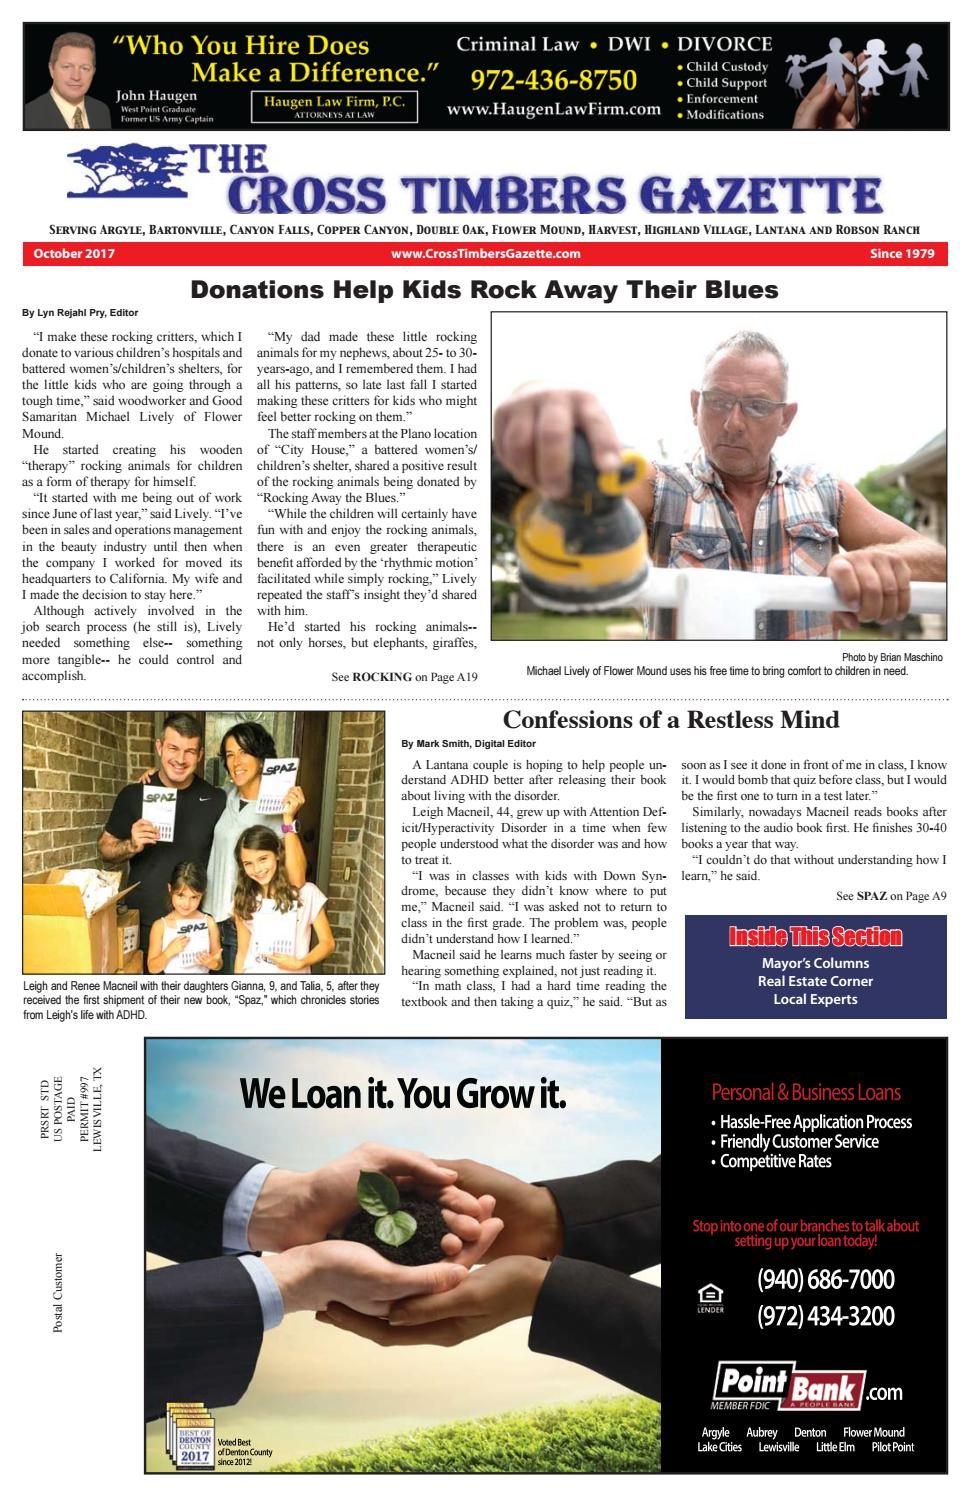 The Cross Timbers Gazette October 2017 by The Cross Timbers